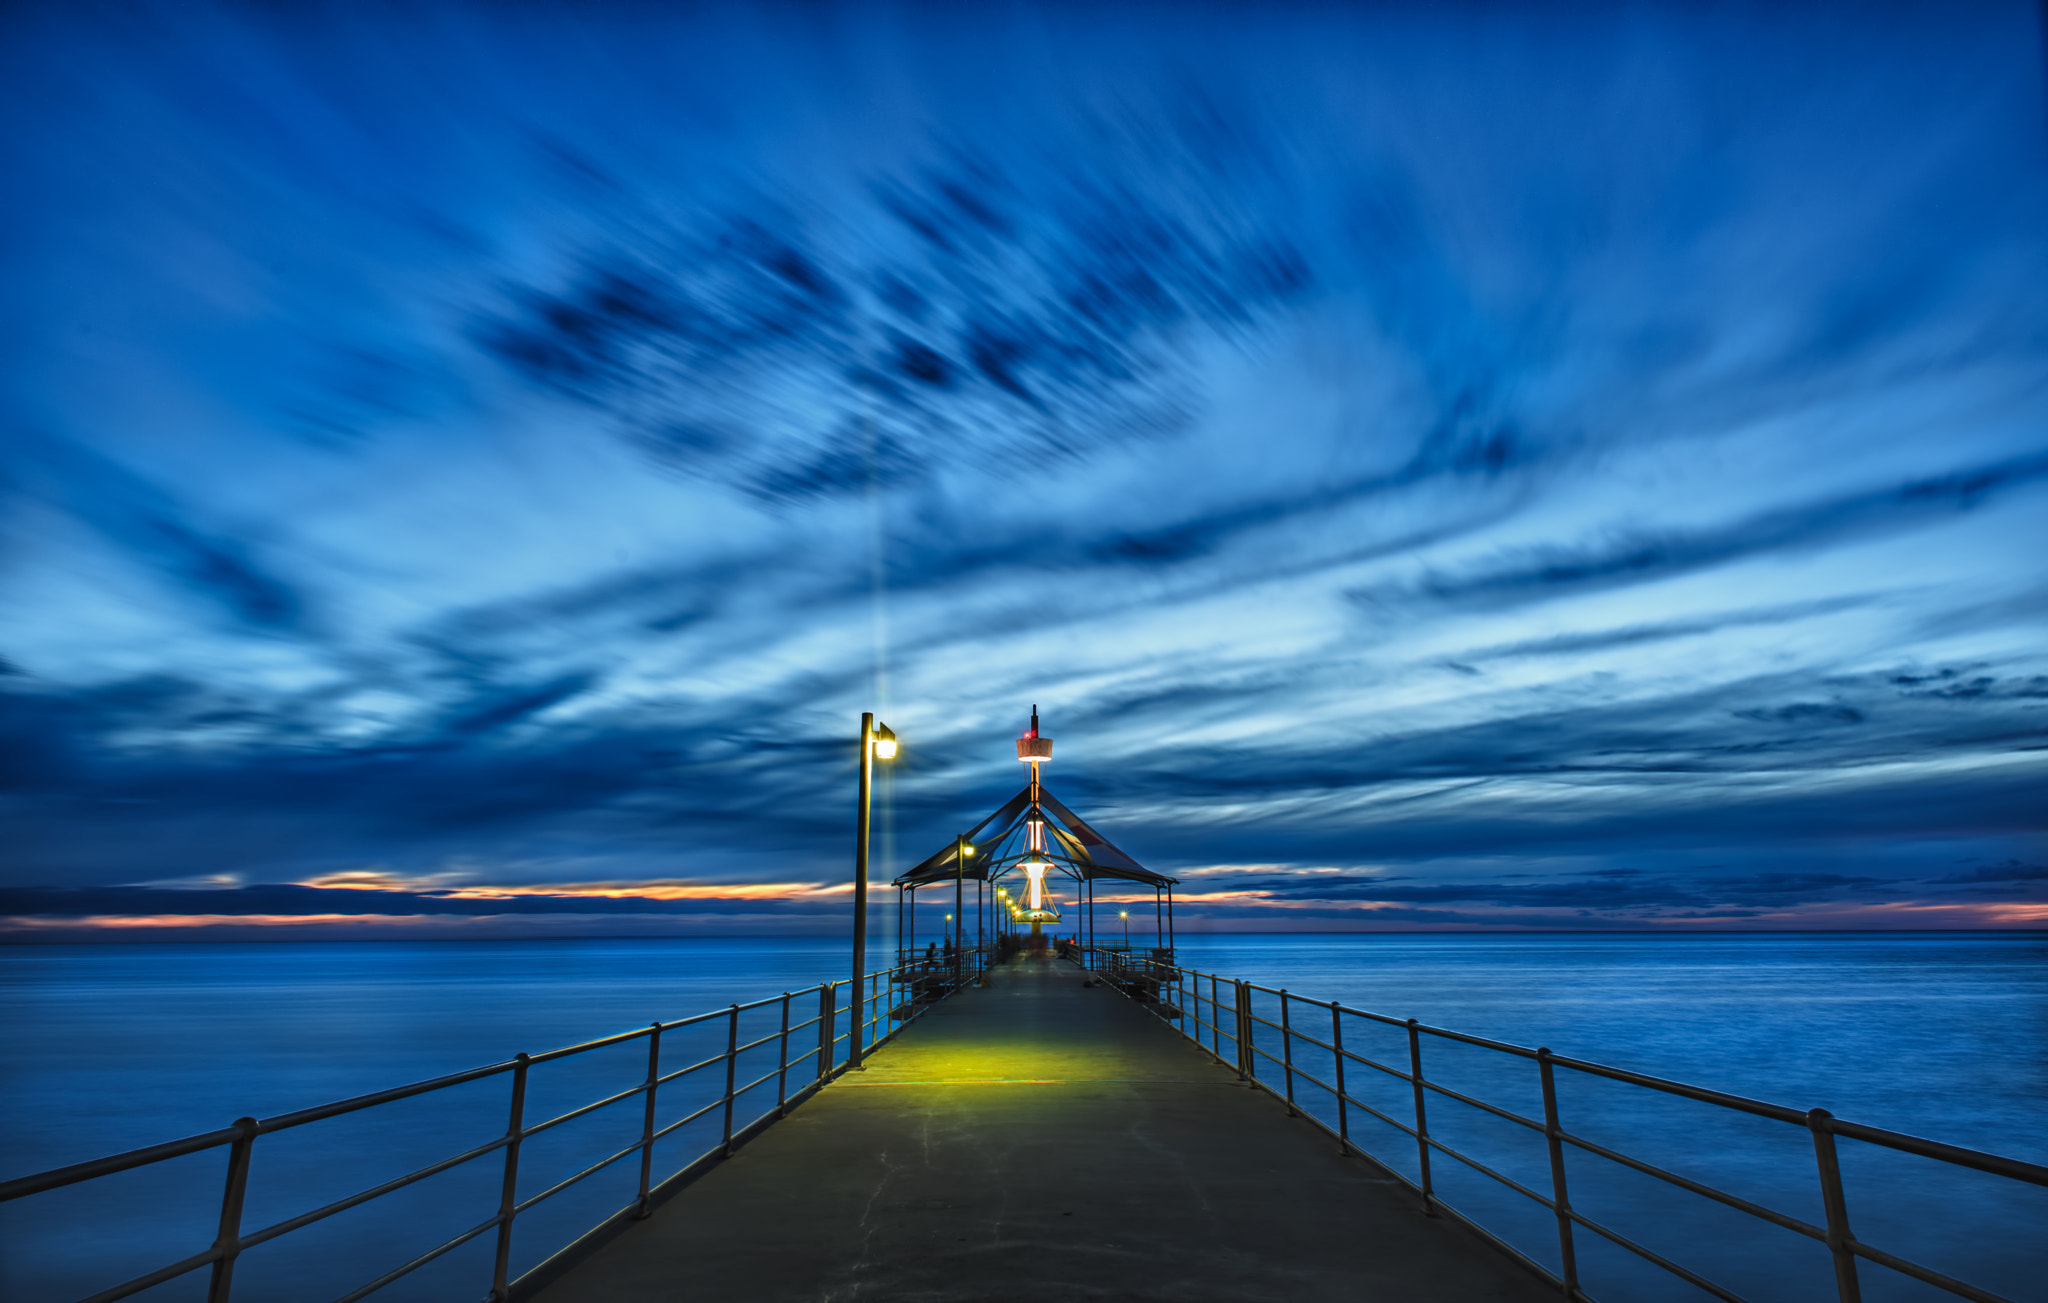 Photograph Blue Hour by Bipphy Kath on 500px